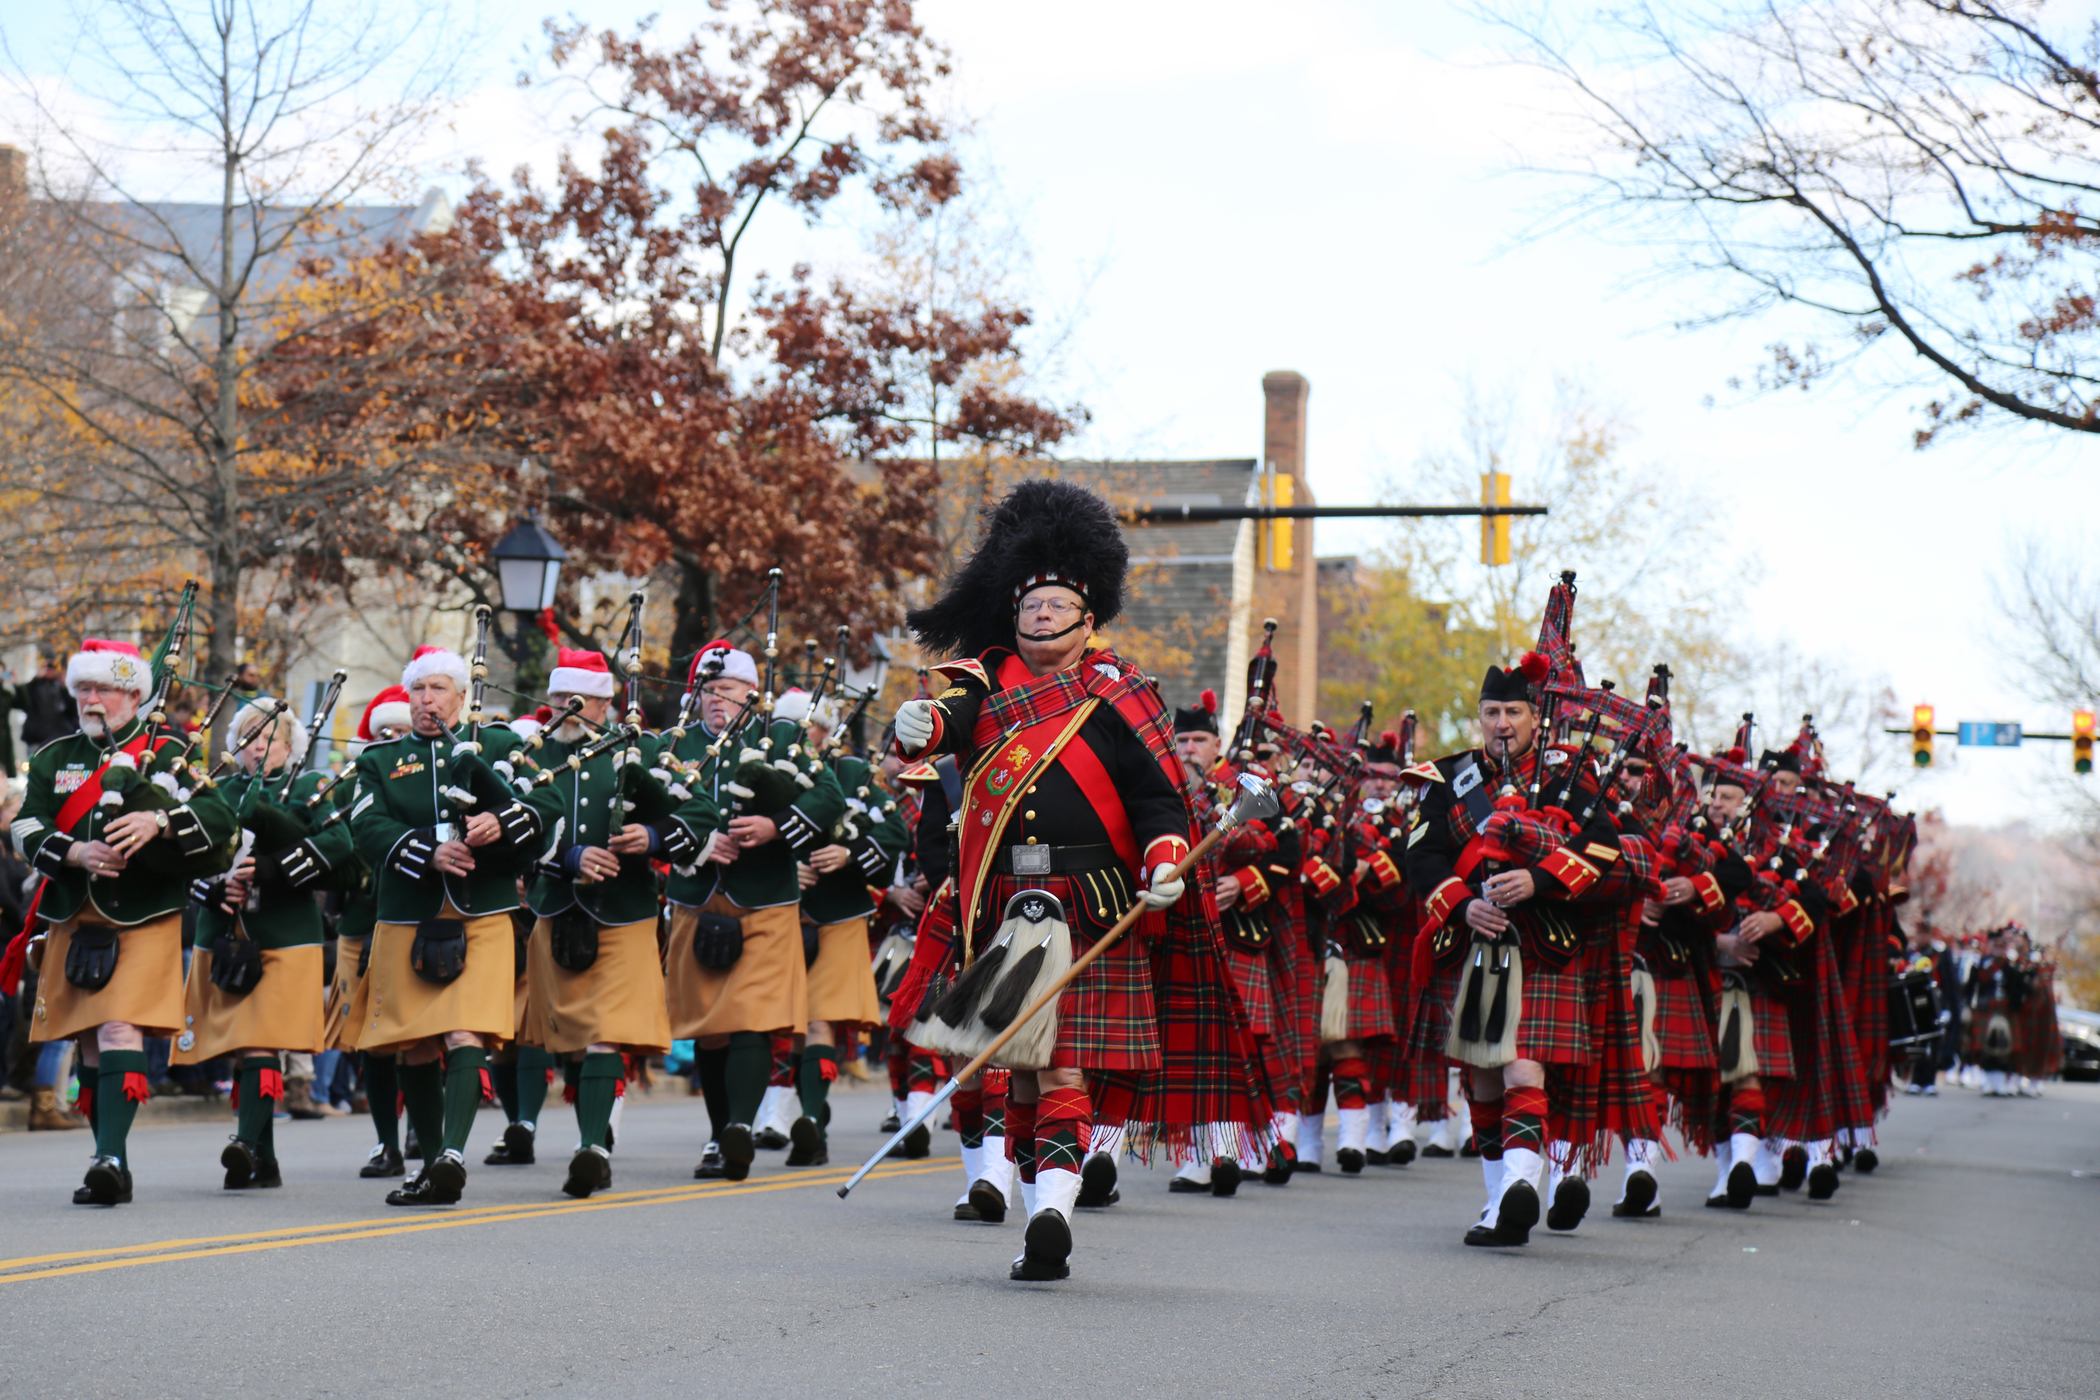 Christmas Events In Old Town Alexandria Va 2020 Cancelled: 50th Annual Campagna Center Scottish Christmas Walk